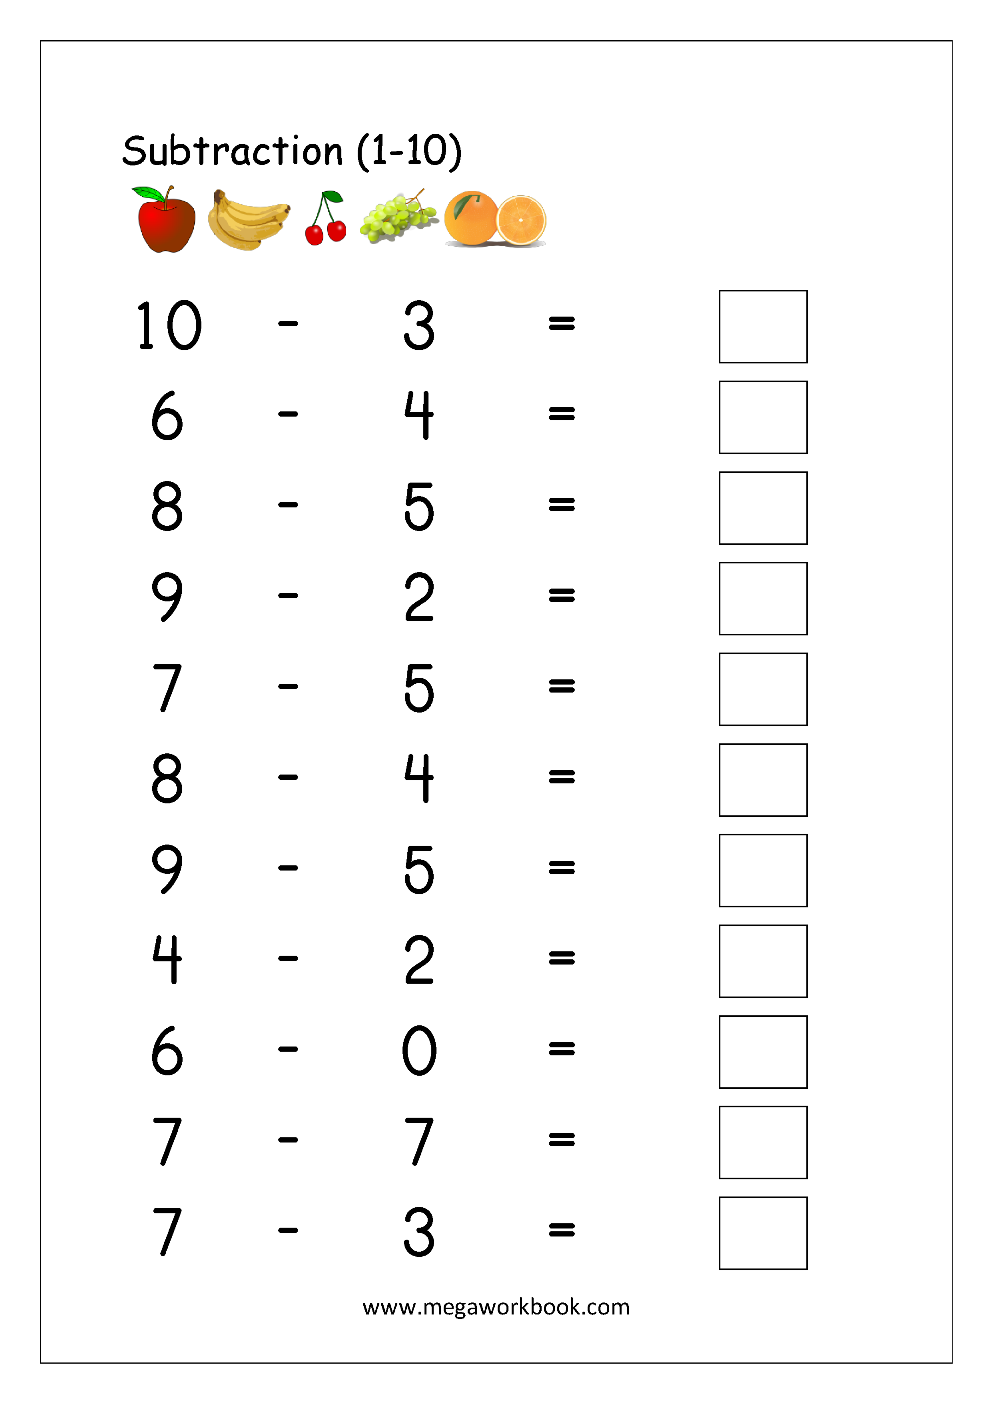 Subtraction Worksheets Subtraction With Pictures/Objects